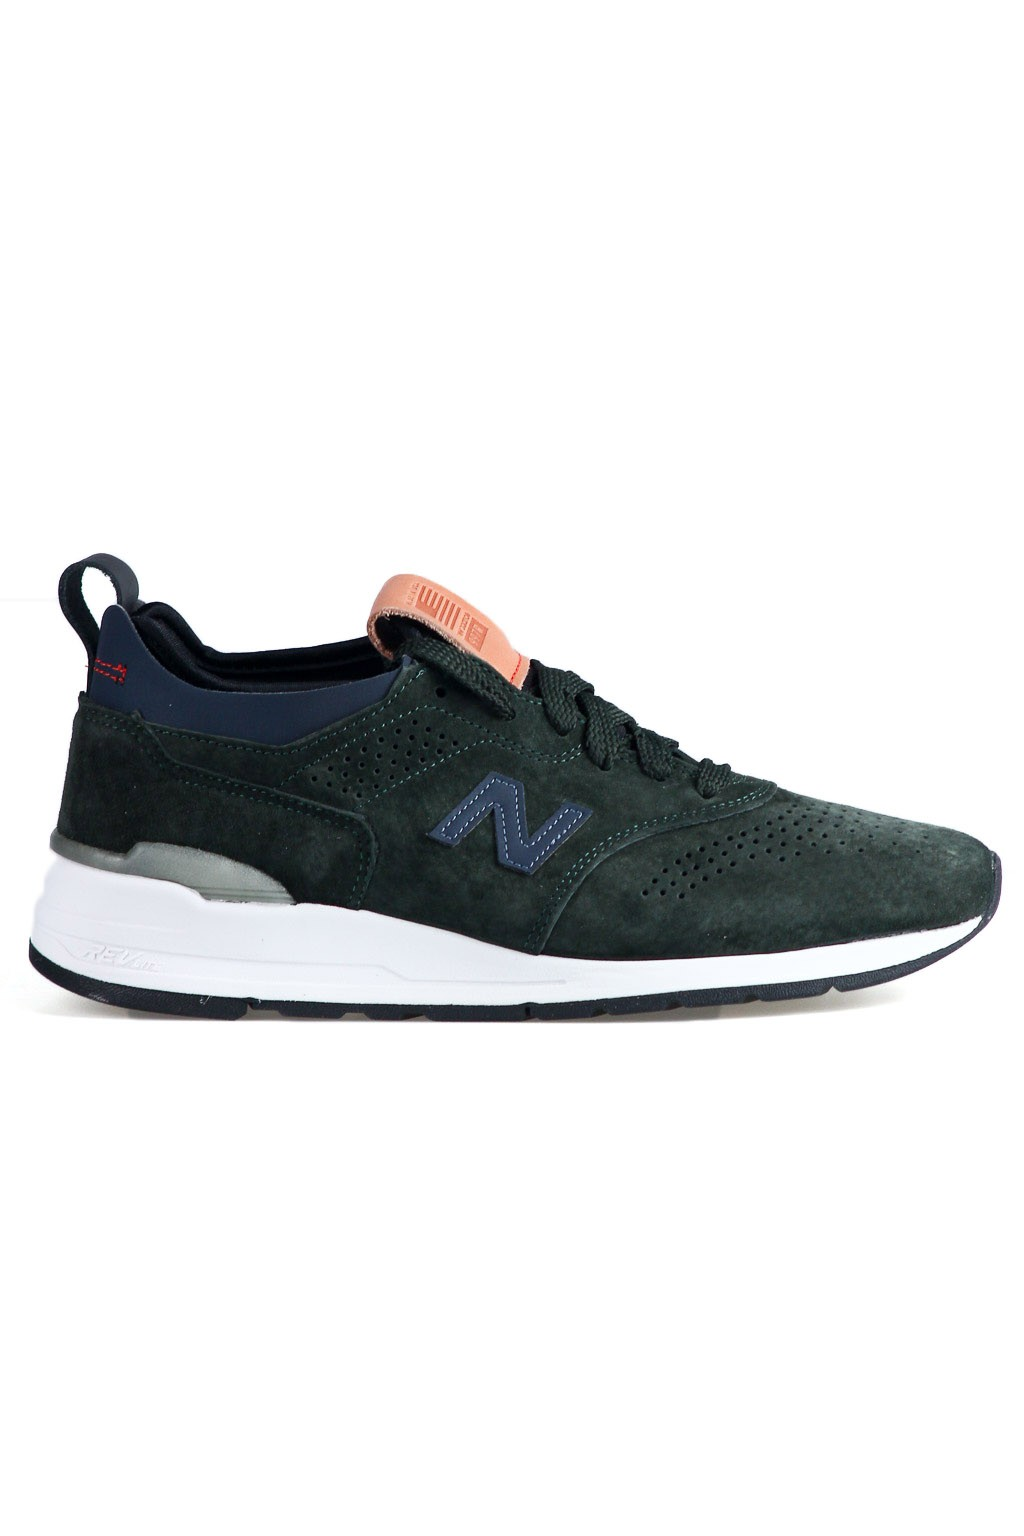 New Balance Homme 997R M997HB2 Made in USA Vert Bleu